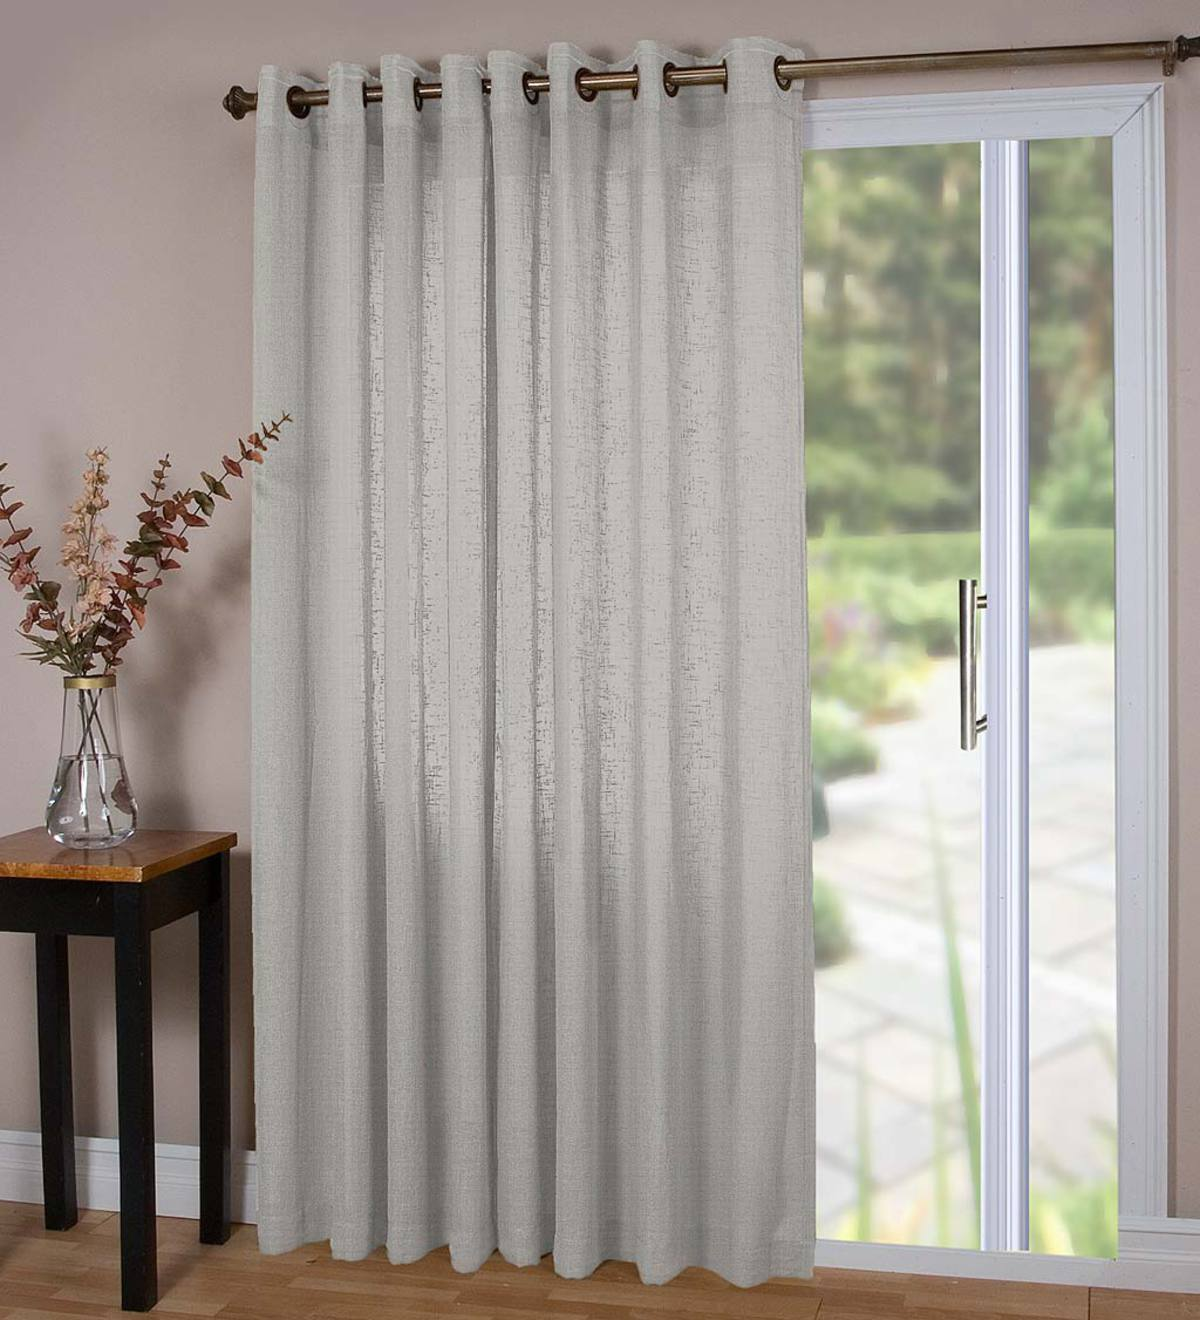 "Lined Sheer Linen Panel with Grommets, 106""W x 84""L Double Width - Gray"